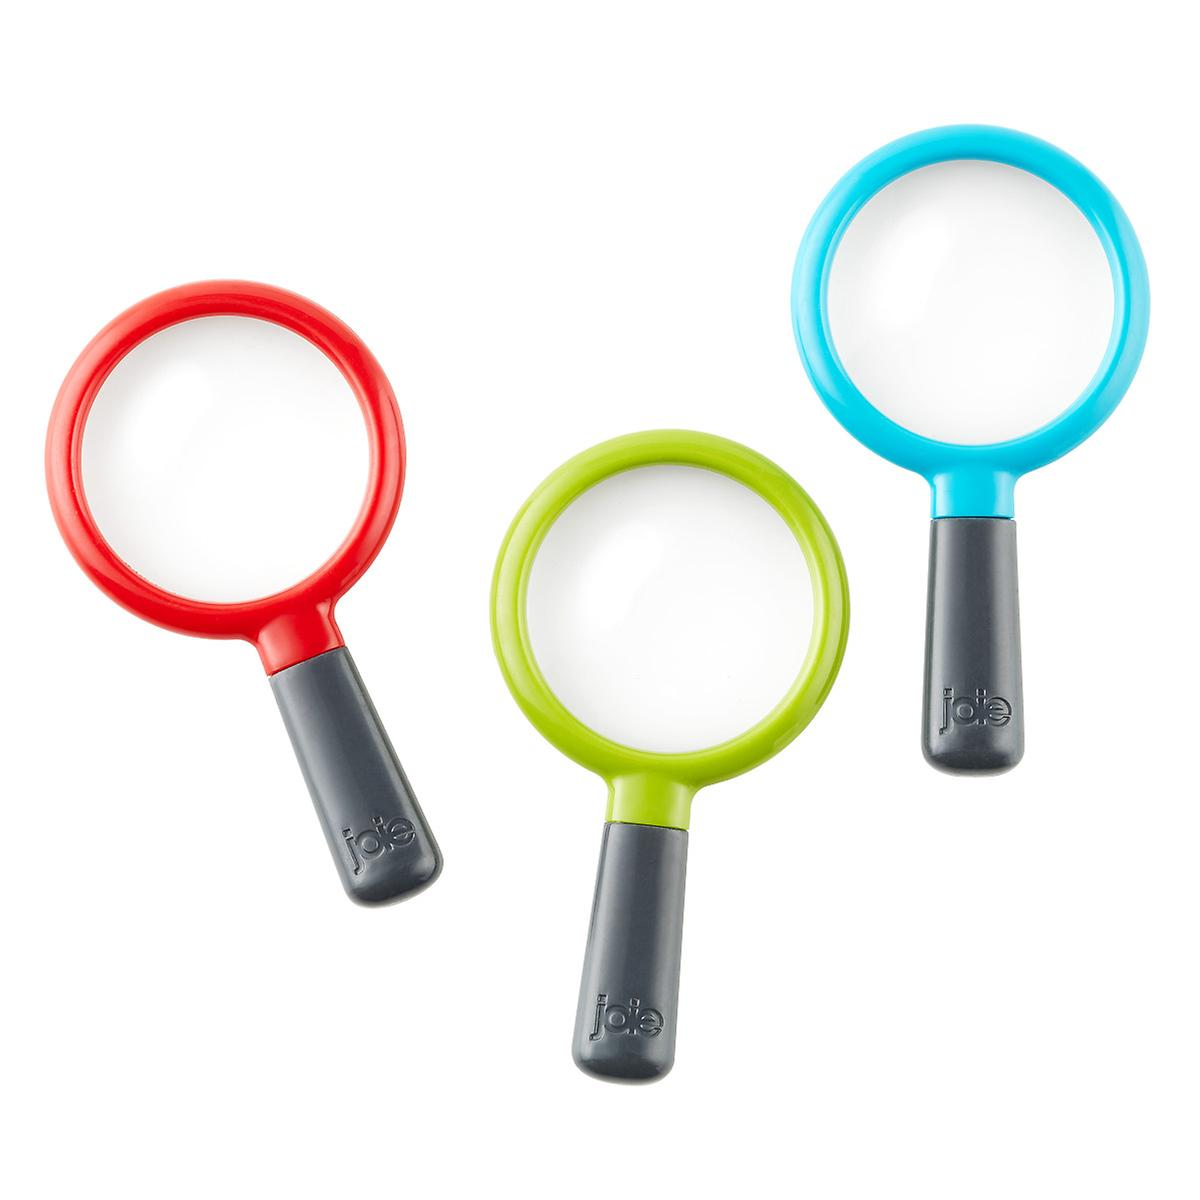 Joie Magnetic Magnifying Glass